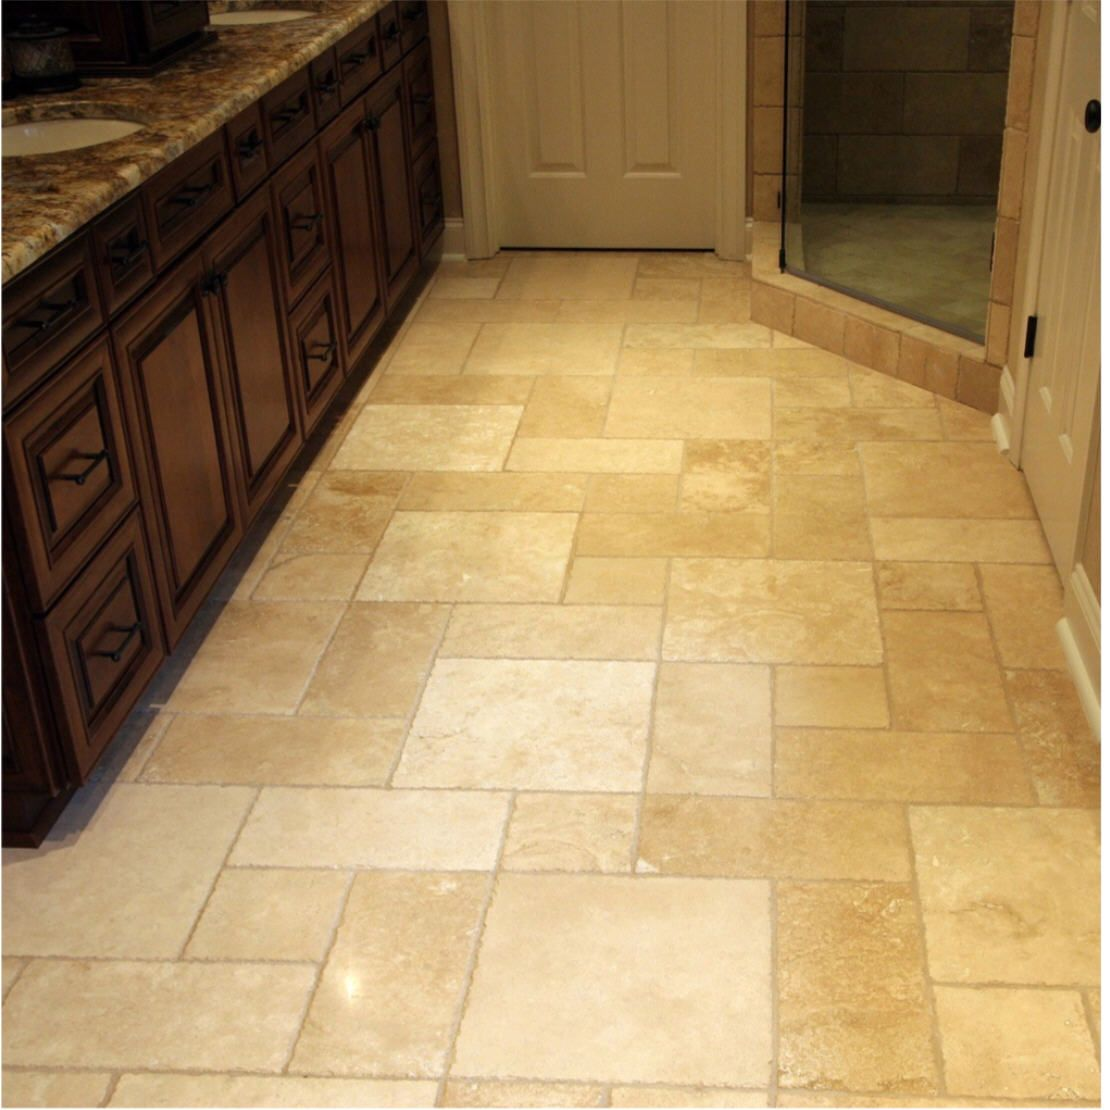 Travertine Floors In Kitchen Travertine Tile Floor Pattern Called Hopscotch Affordable Design